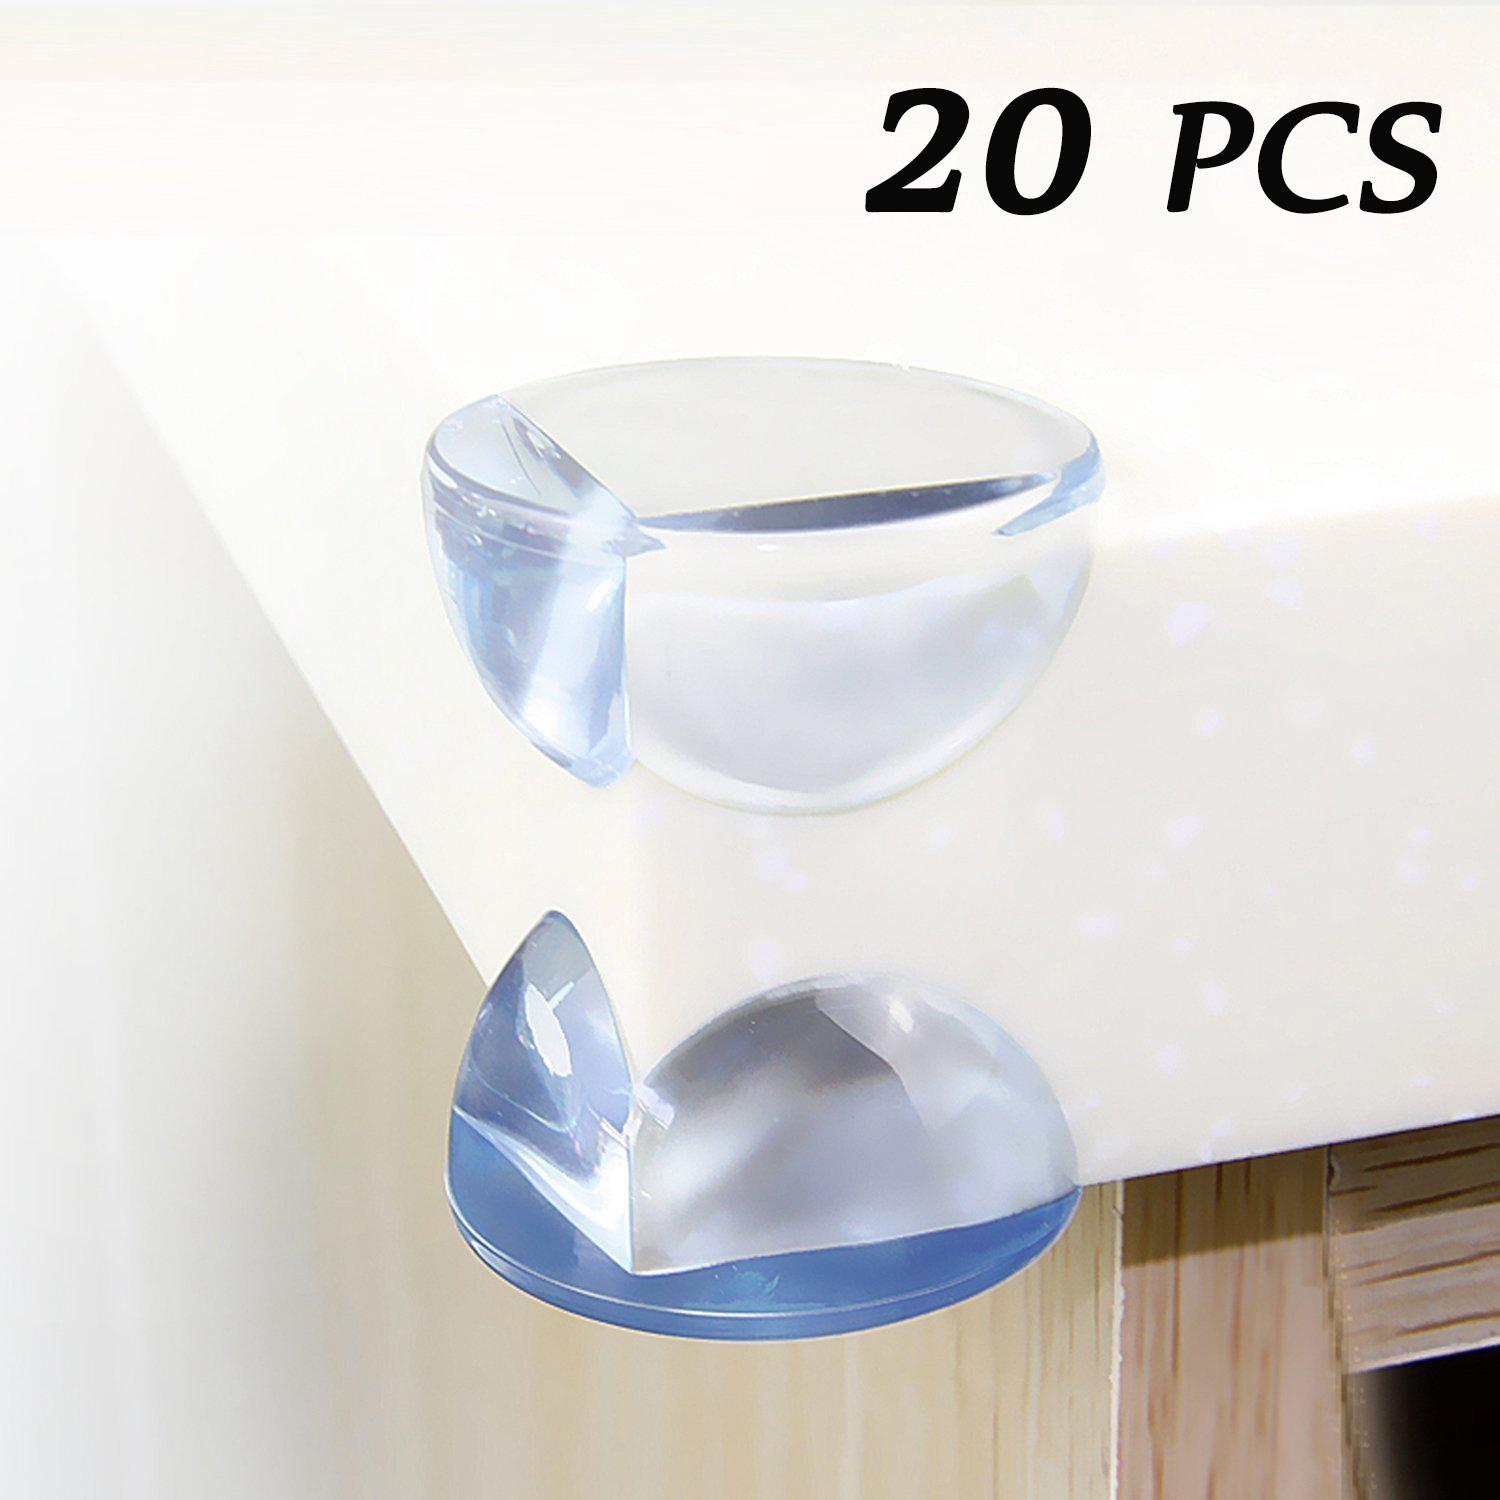 Safety Corner Protectors for Kids (20 PCS),  Quality Clear Soft Large Table Edge Bumper Guards for Child Baby Proofing